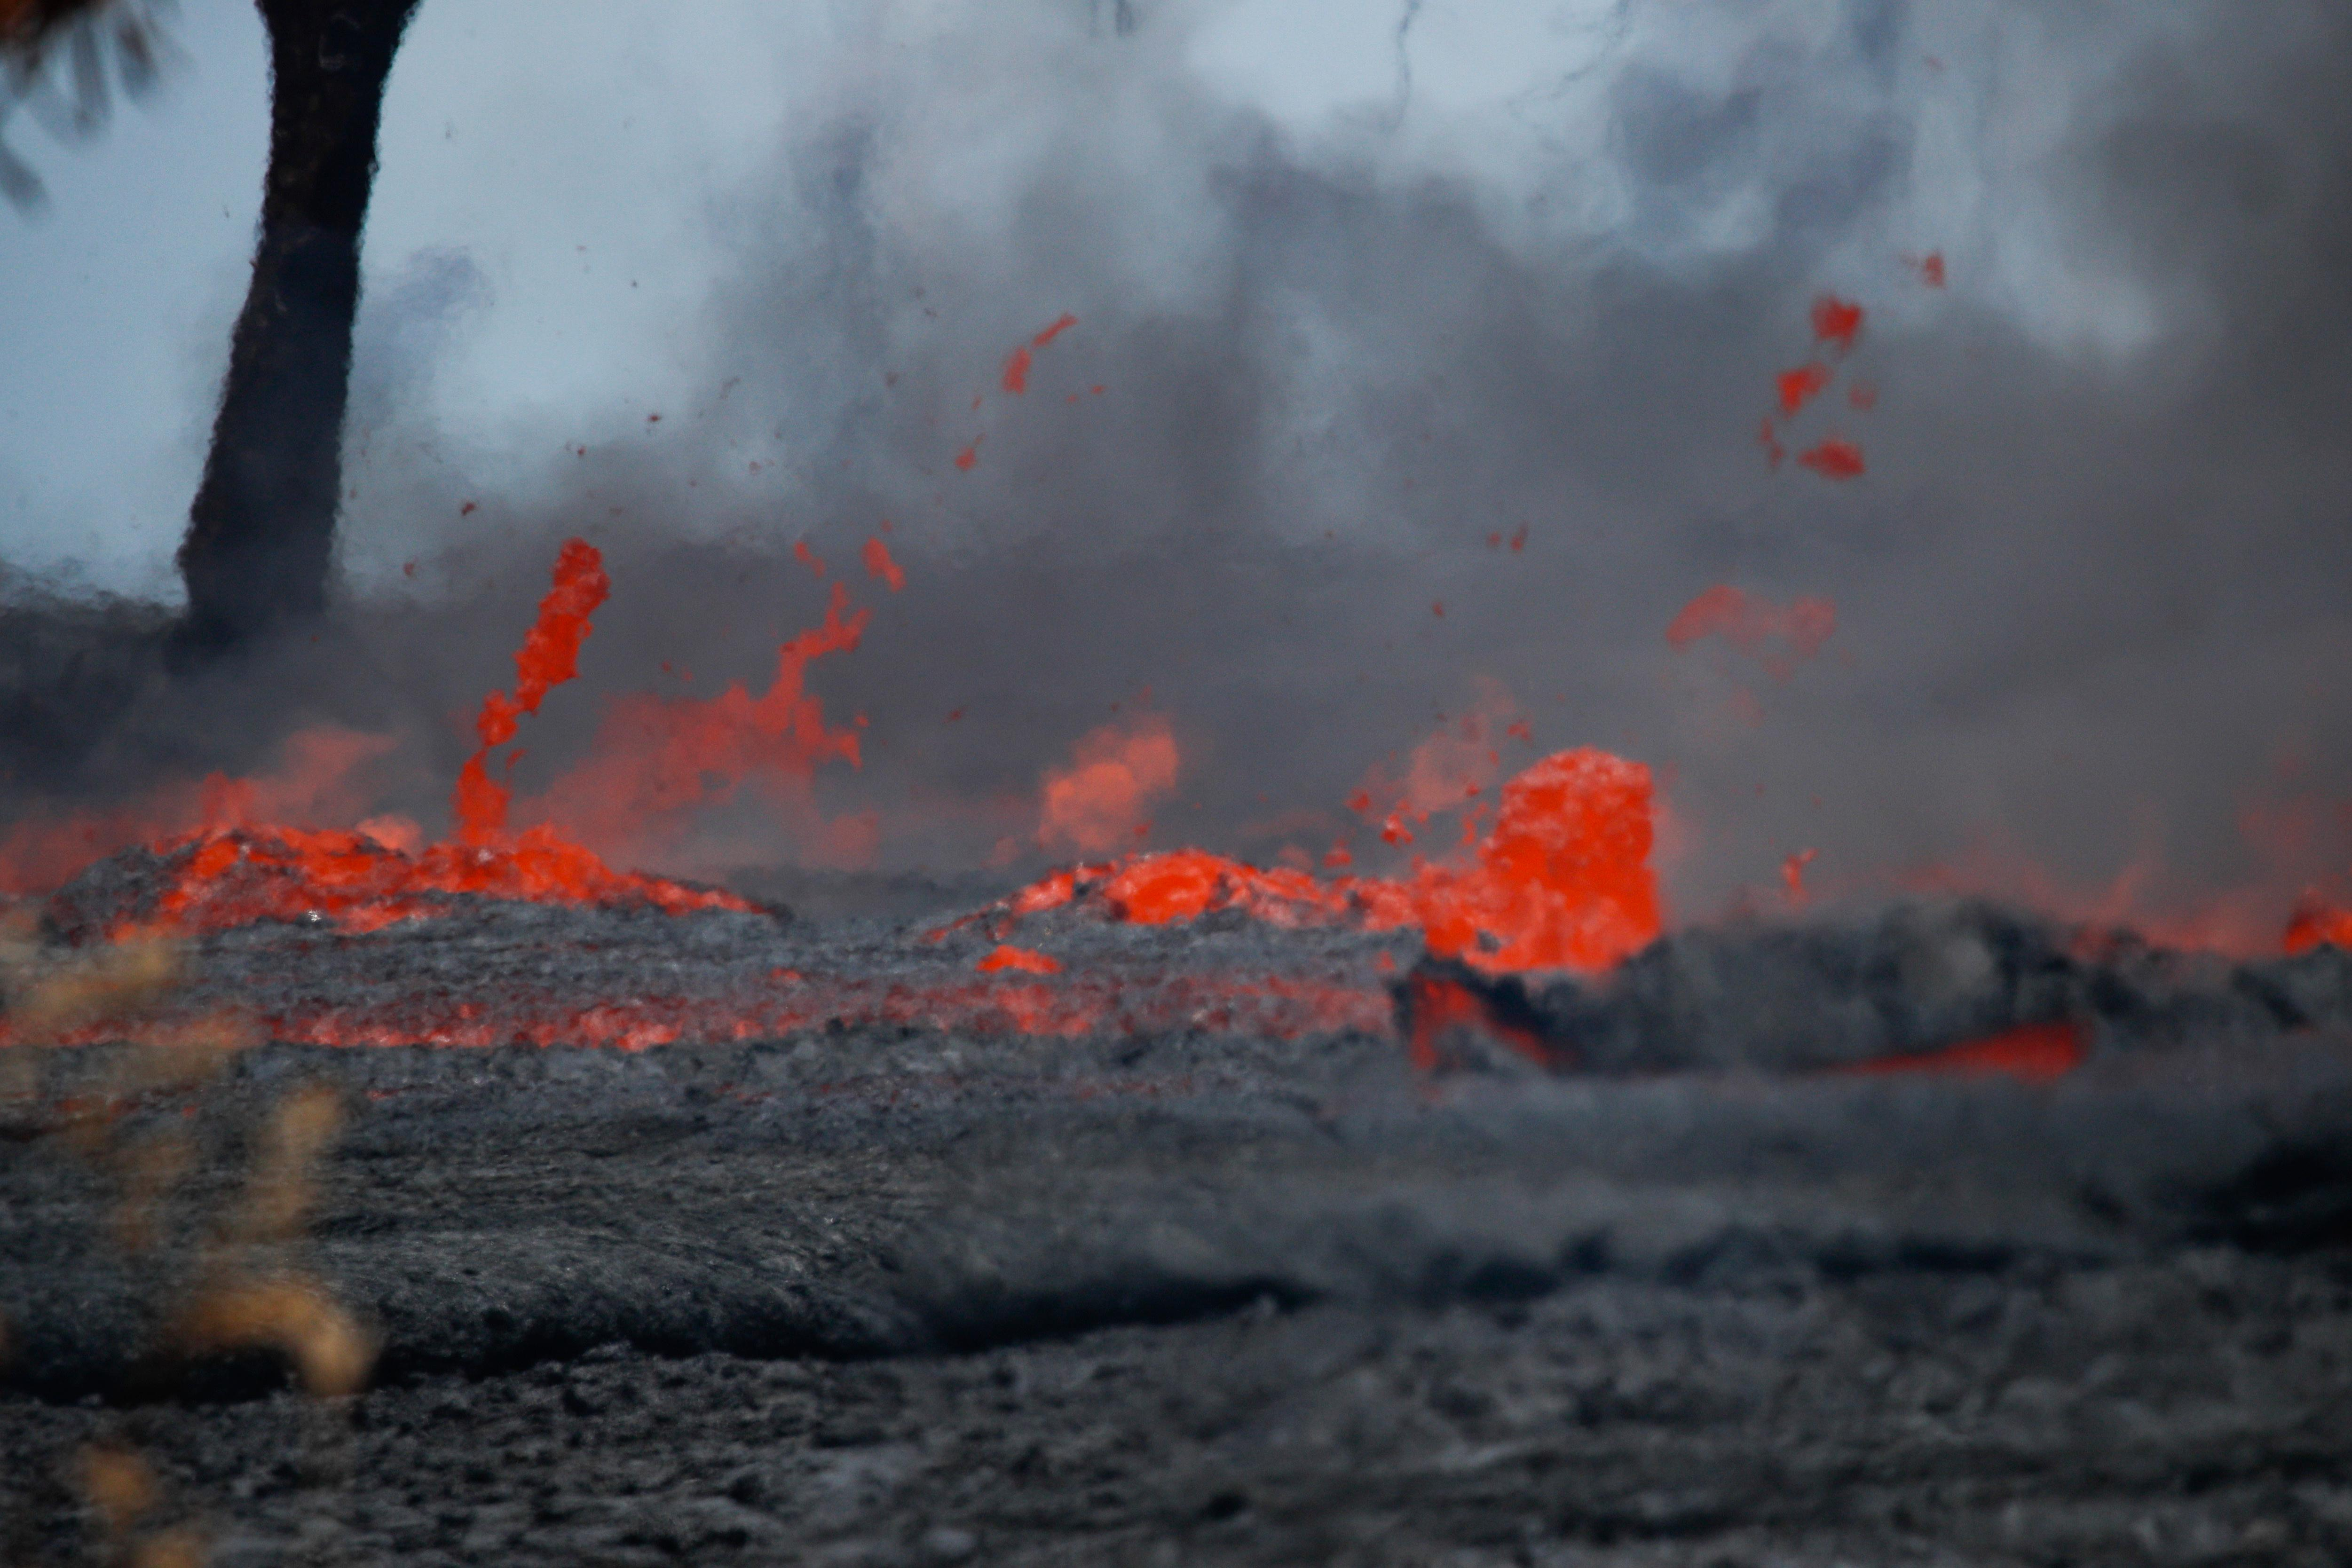 Fissures spew lava in the Leilani Estates subdivision near Pahoa, Hawaii, Tuesday, May 22, 2018. Authorities were racing Tuesday to close off production wells at a geothermal plant threatened by a lava flow from Kilauea volcano on Hawaii's Big Island. (AP Photo/Jae C. Hong)